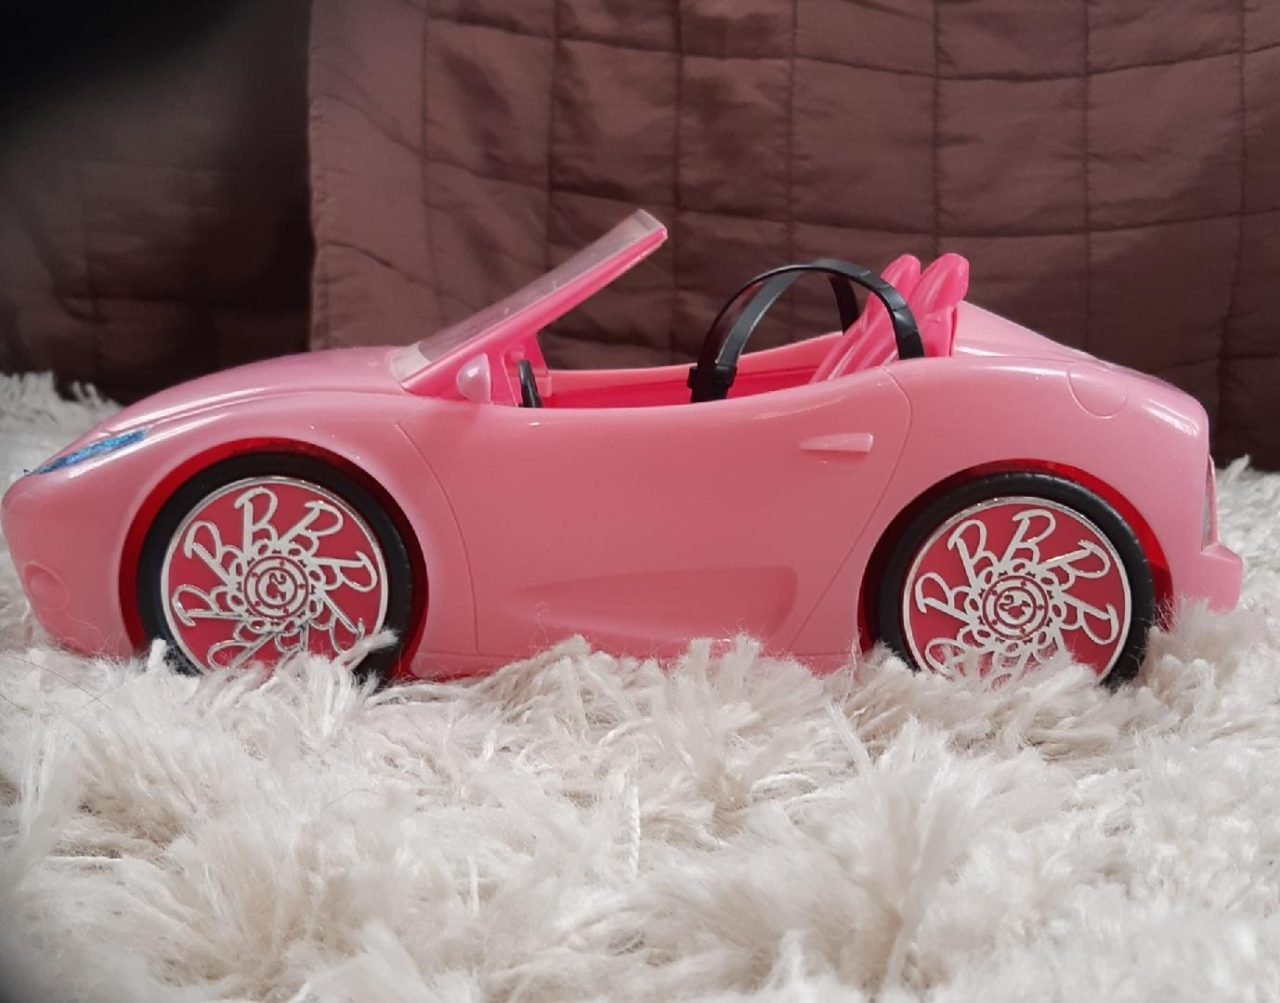 Pink Barbie Convertible Car From The Side On White Carpet With Brown Background